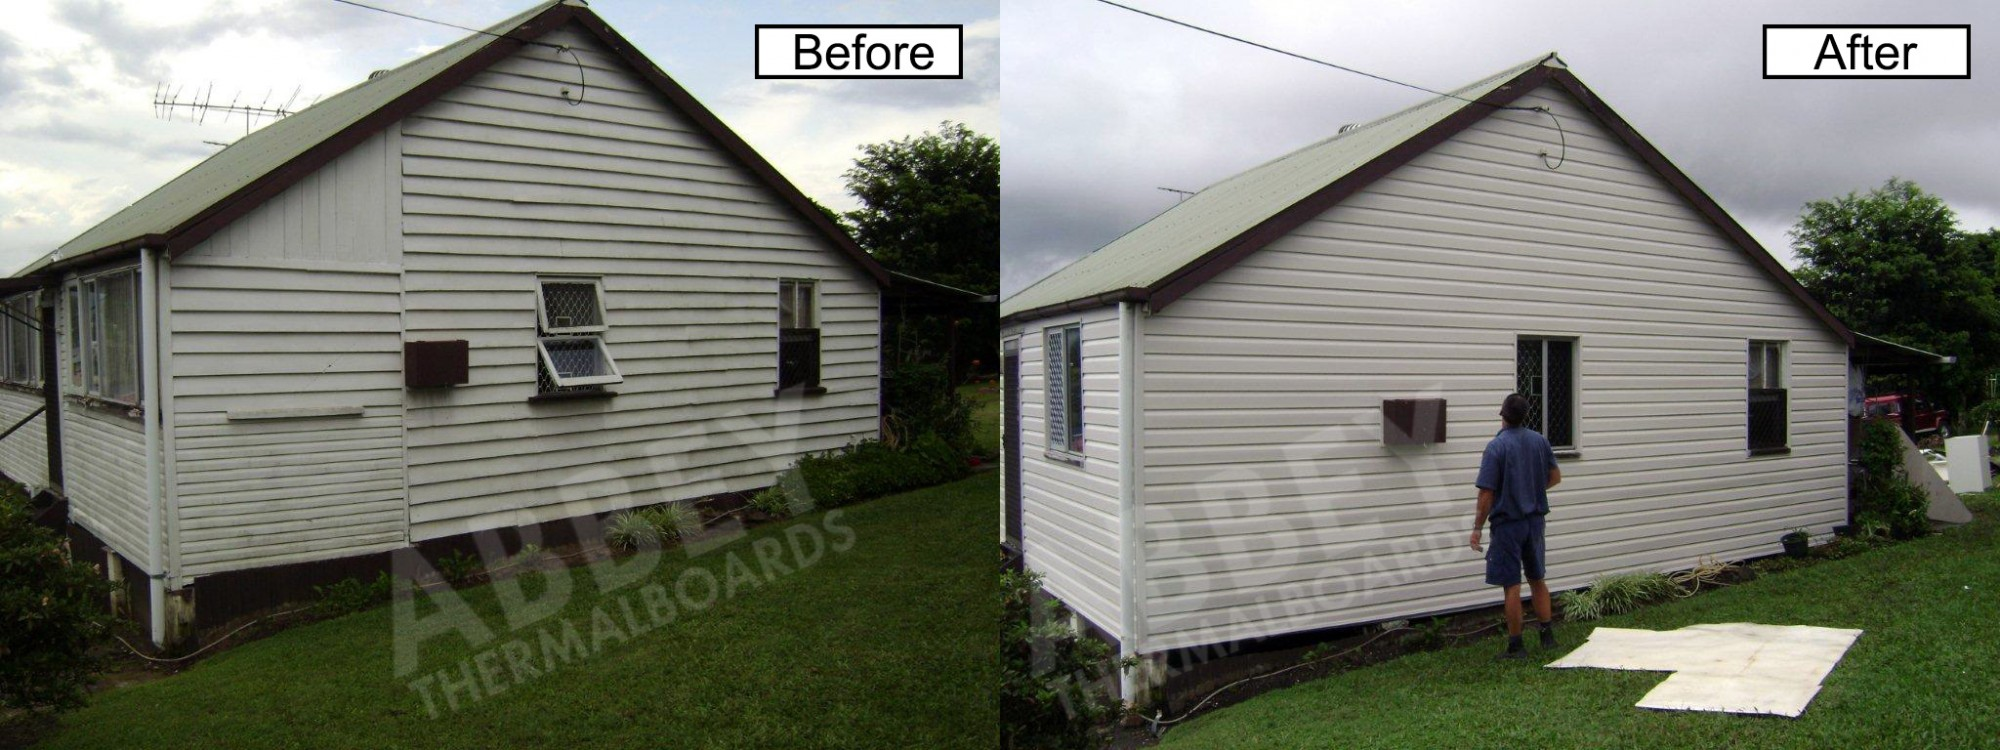 The back before and after shot of a house that has been cladded.